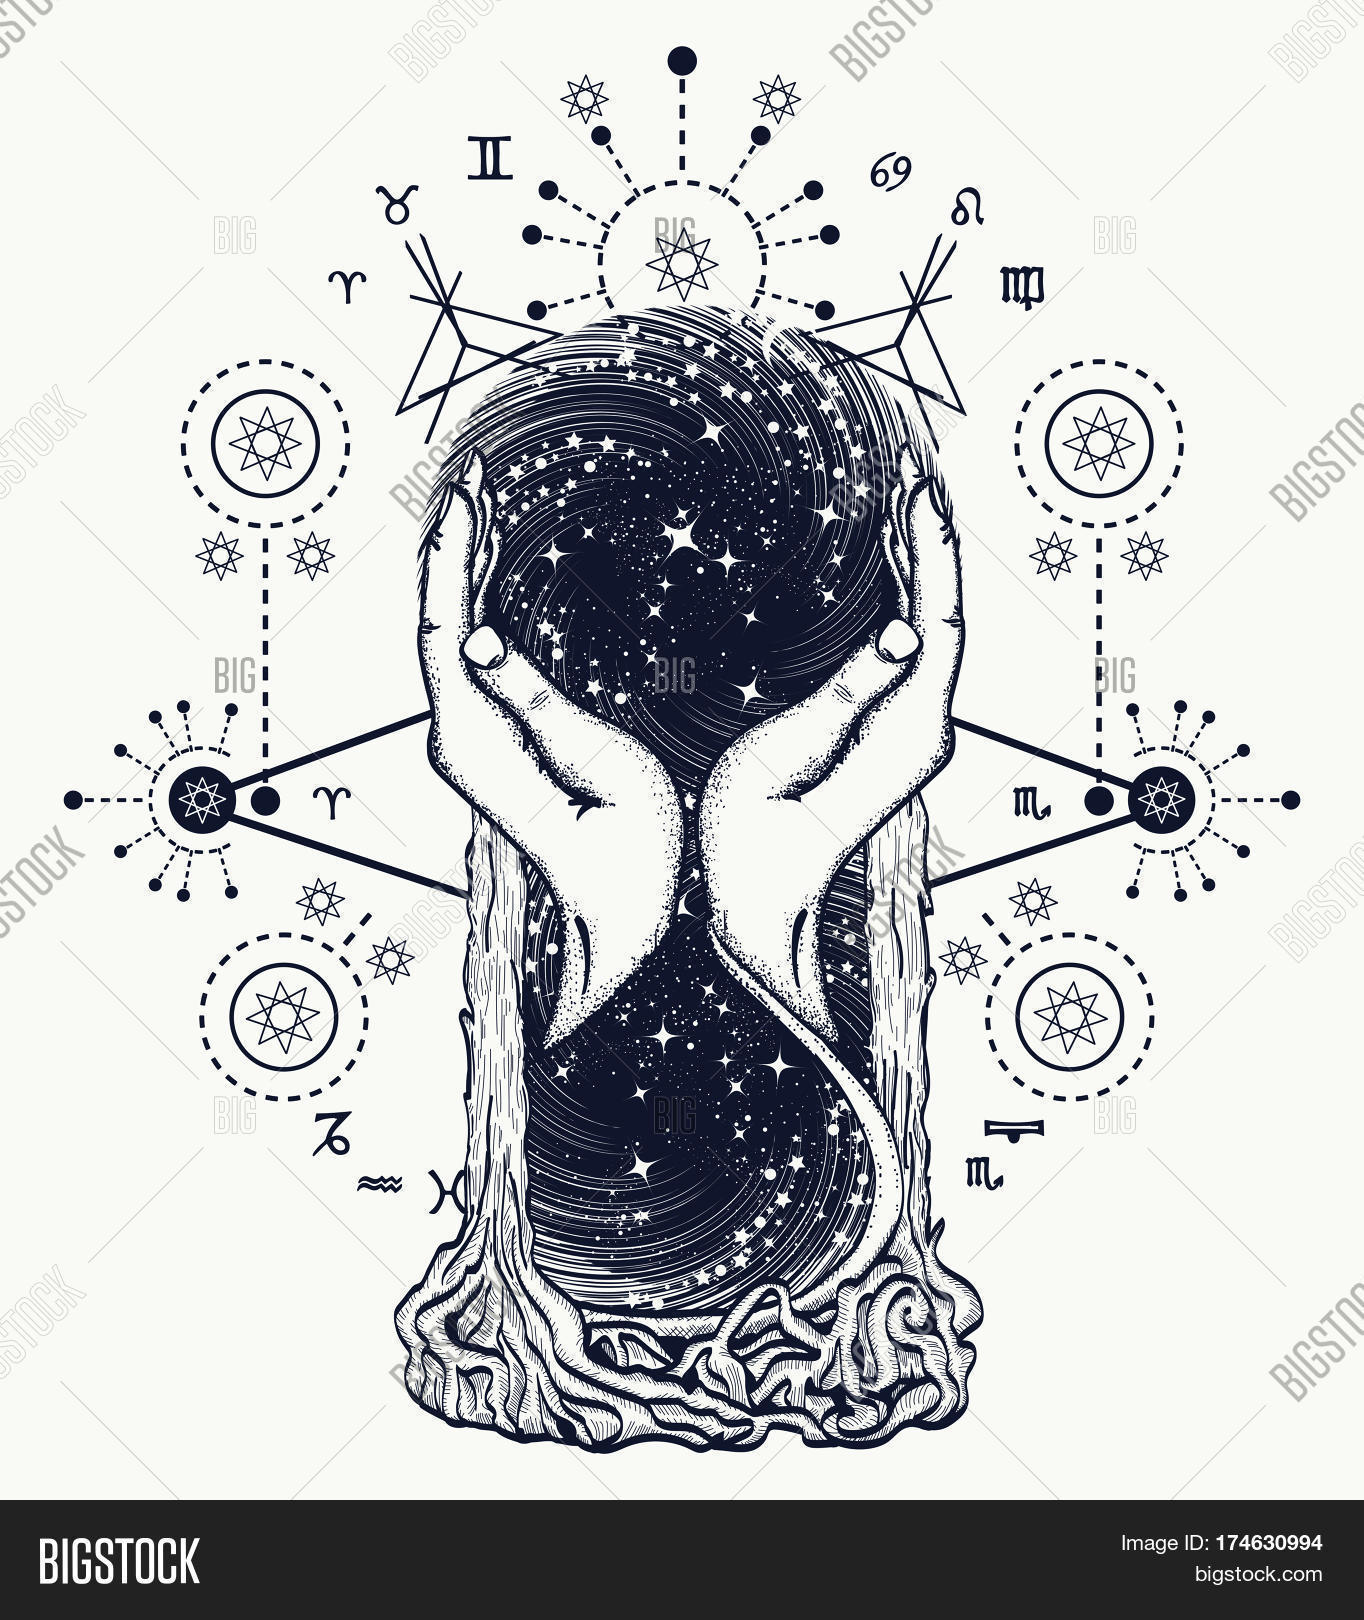 Space hourglasses tattoo concept vector photo bigstock for Symbols of death tattoos